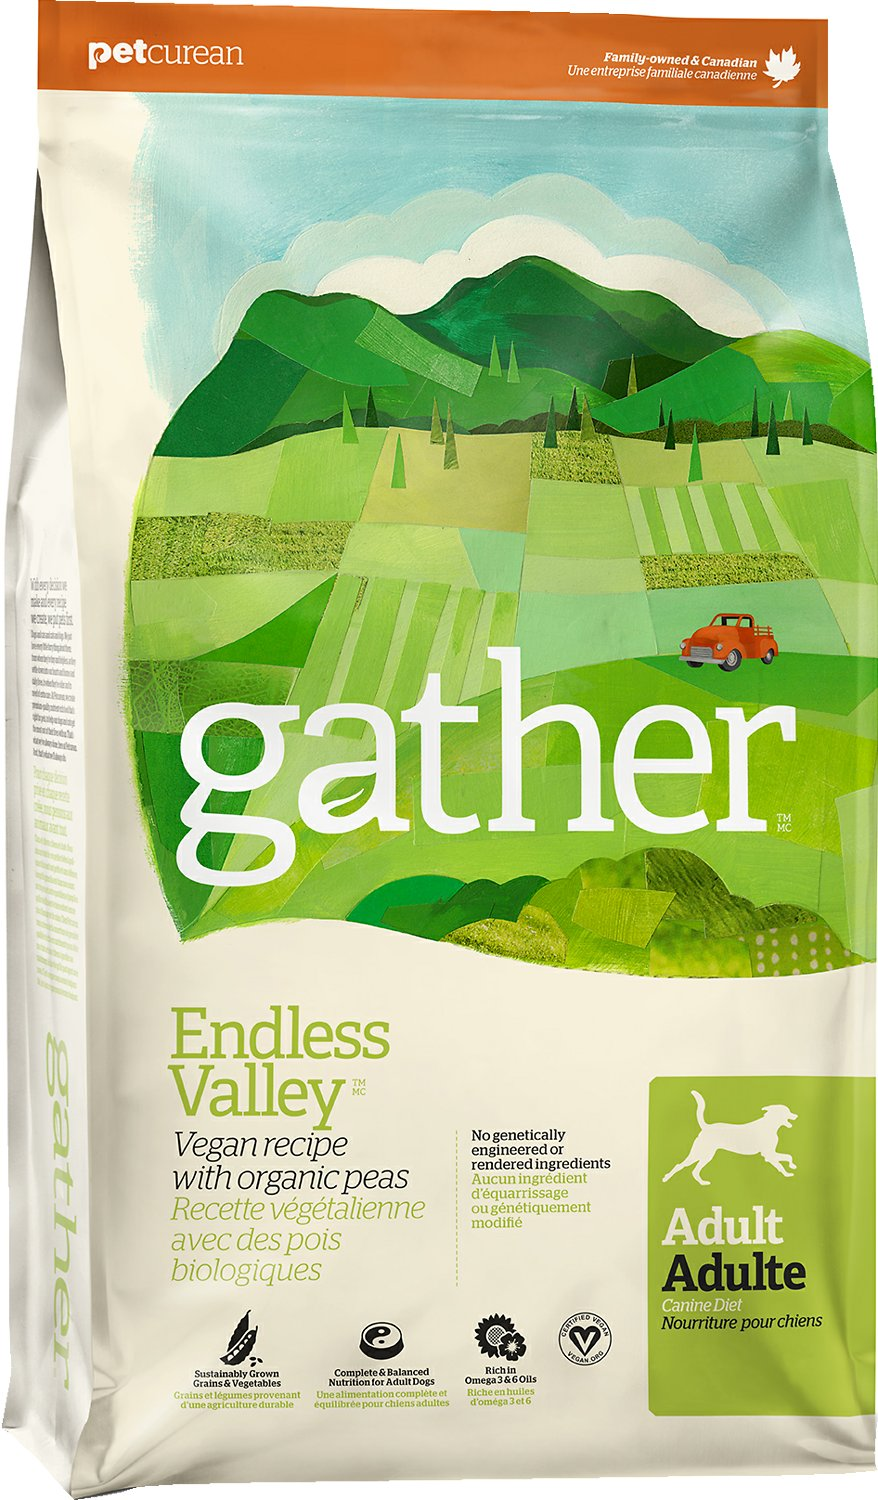 Endless Valley Pet Food